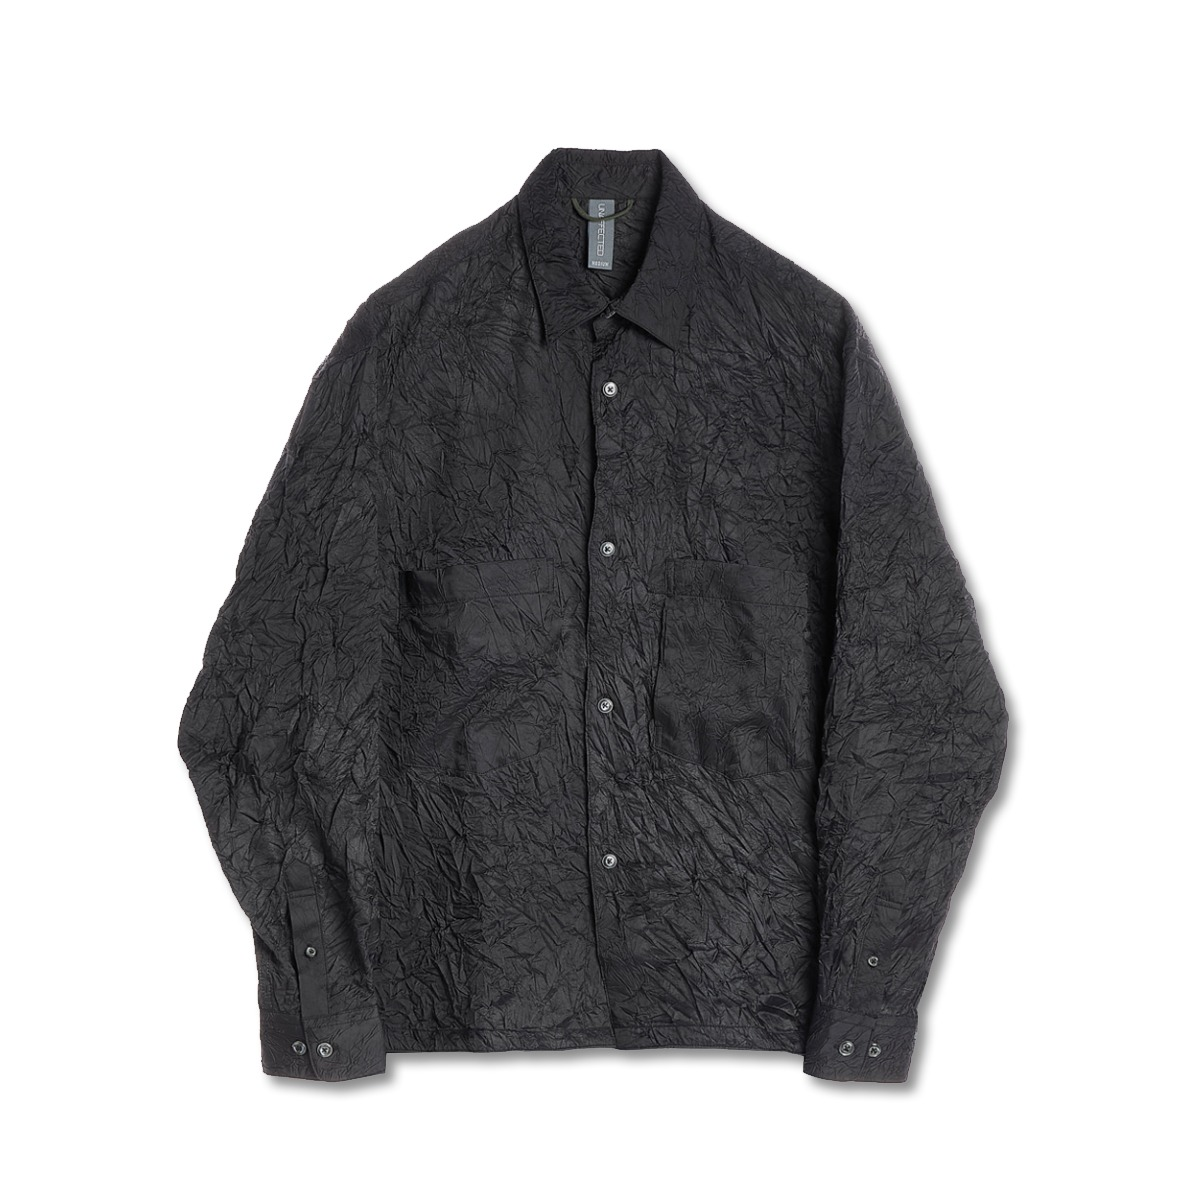 [UNAFFECTED] OVERSIZED SHIRT 'BLACK'